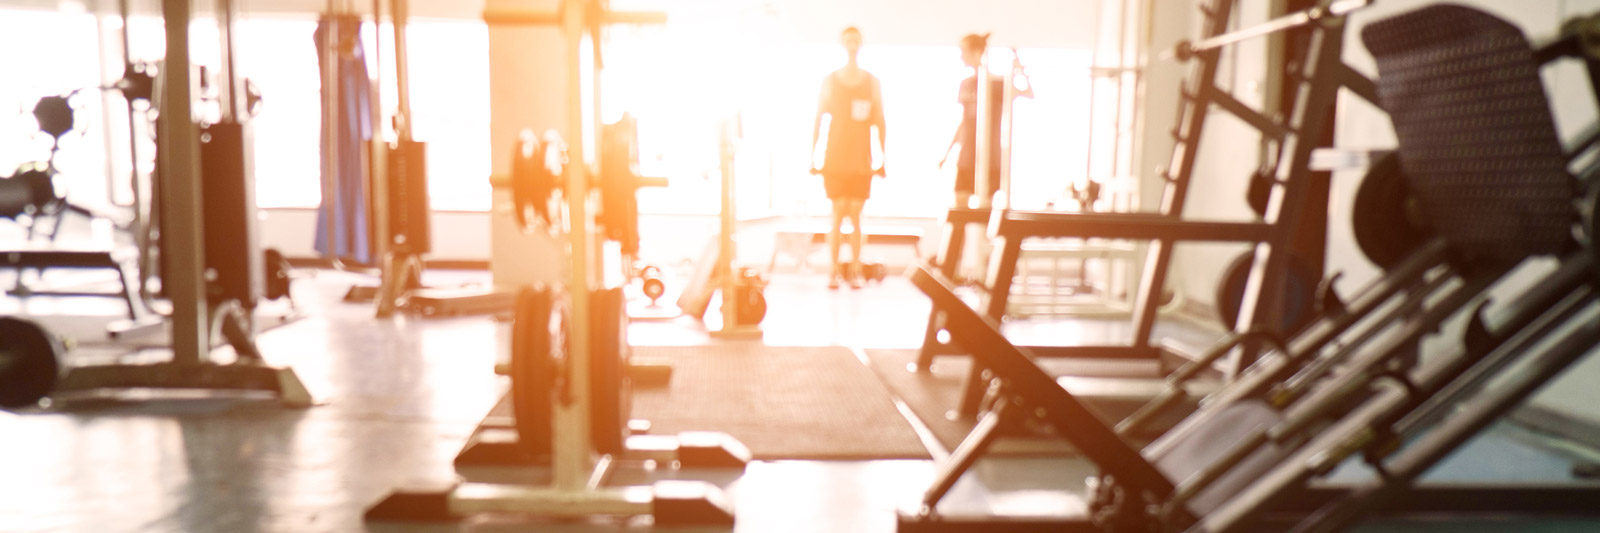 an image of a gym